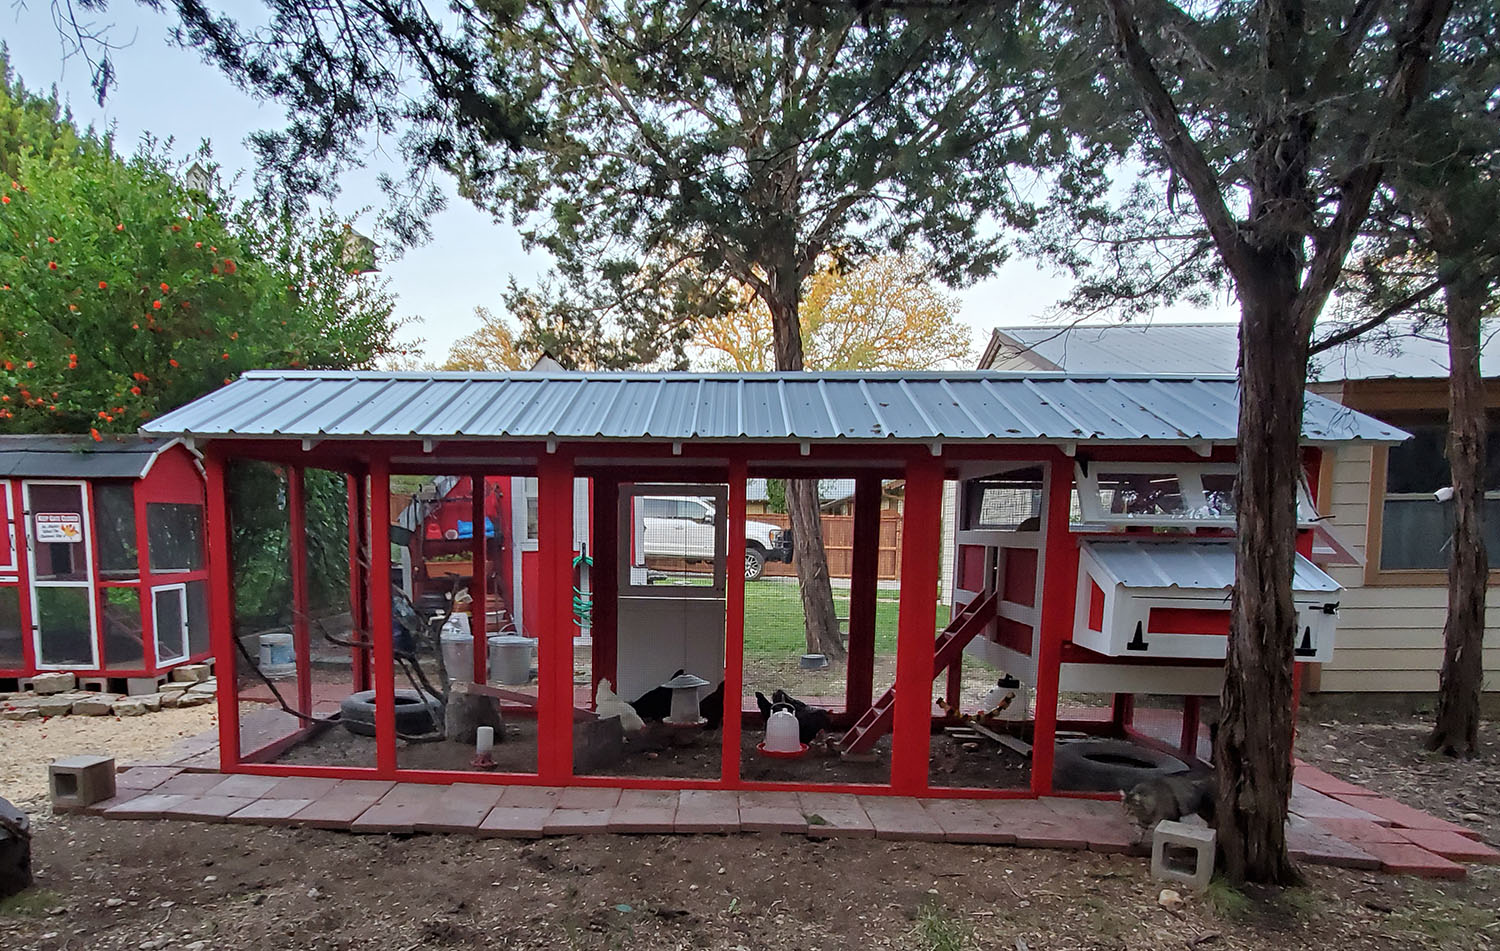 6'x18′ American Coop painted red with white trim